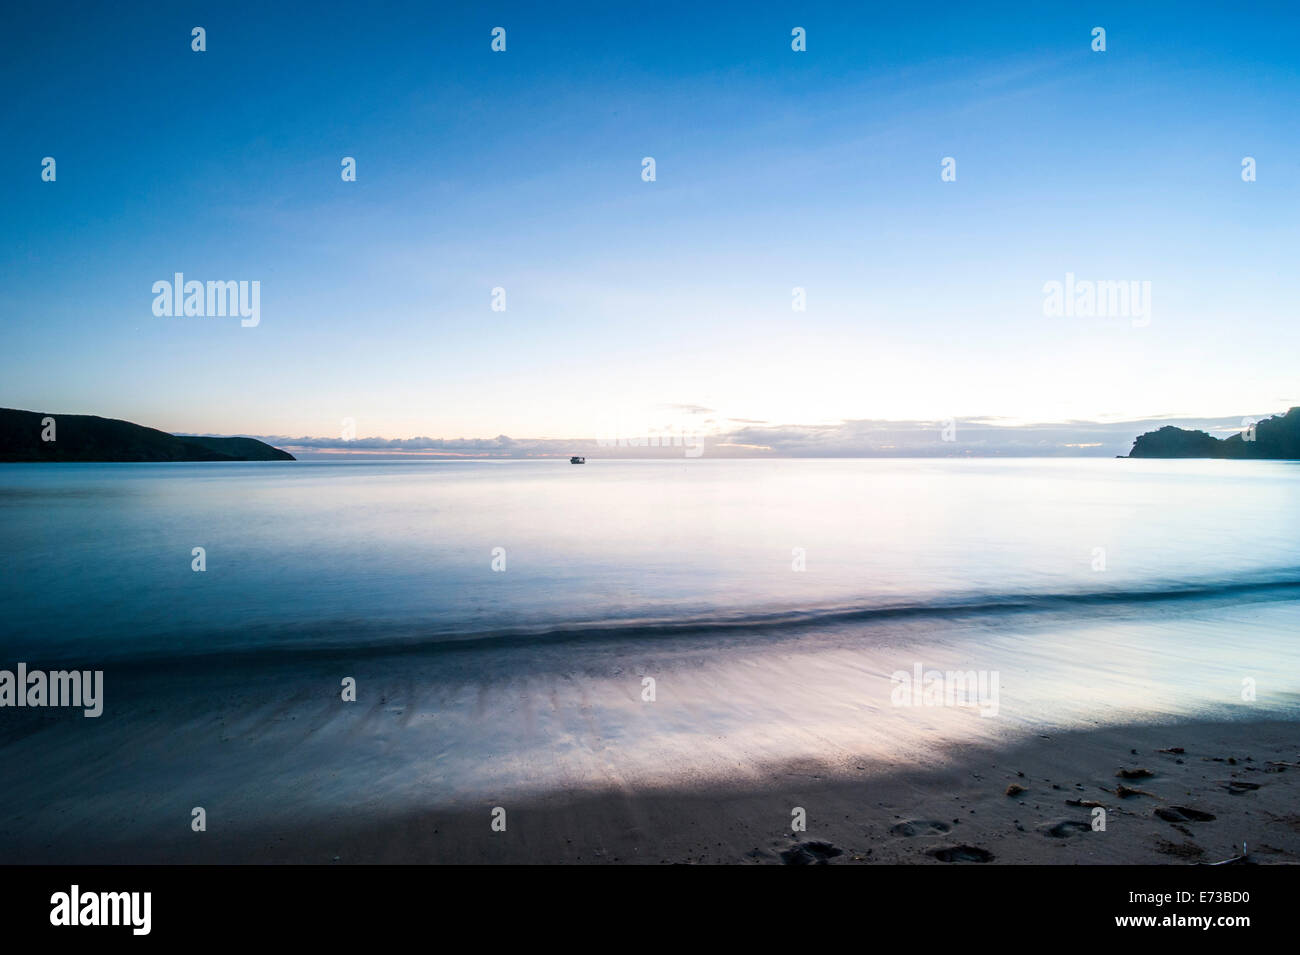 Sunset over the beach of the Korovou Eco-Tour Resort, Naviti, Yasawas, Fiji, South Pacific, Pacific - Stock Image